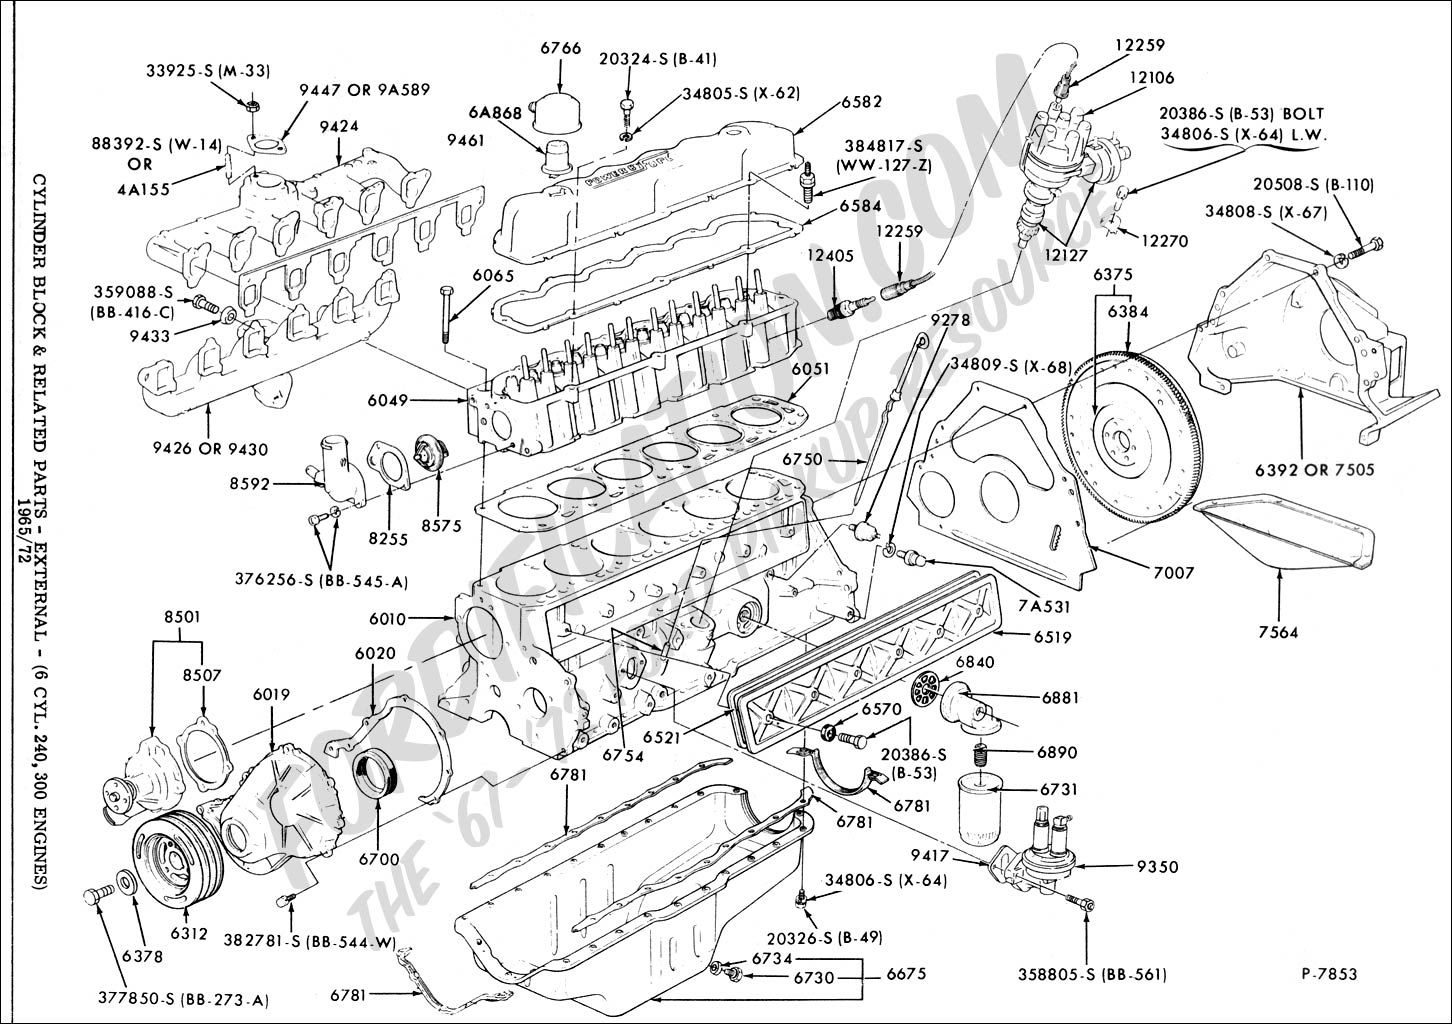 1996 f150 engine diagram manual e book 2007 f150 cylinder diagram 1996 ford f 150 6 [ 1452 x 1024 Pixel ]